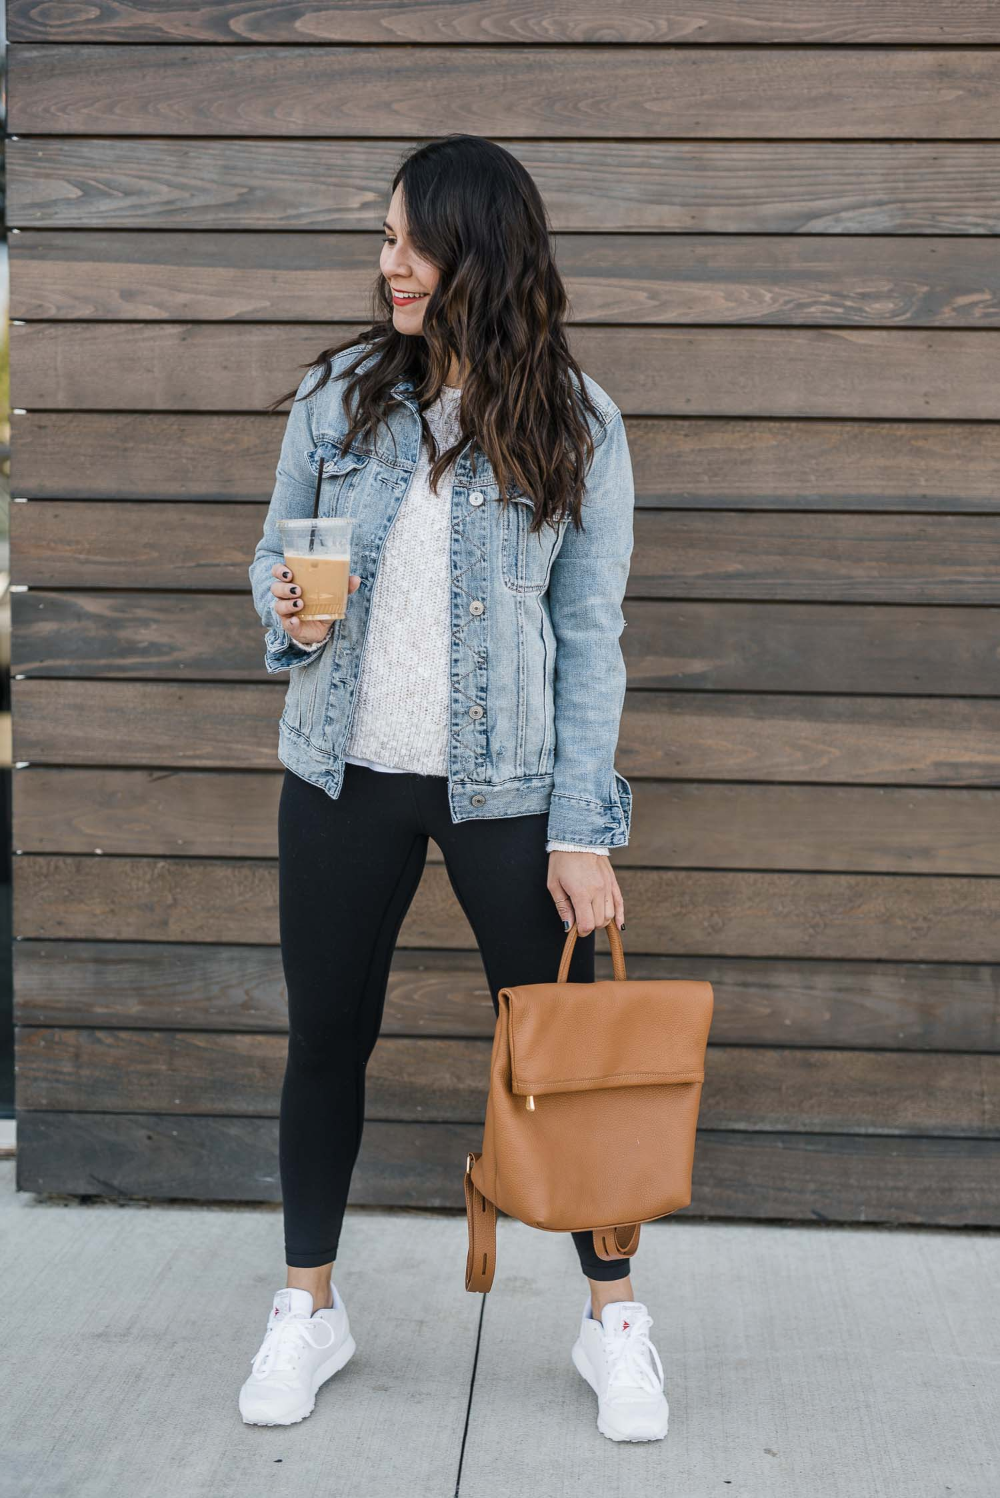 5 Casual Thanksgiving Outfit Ideas | My Style Vita Blog